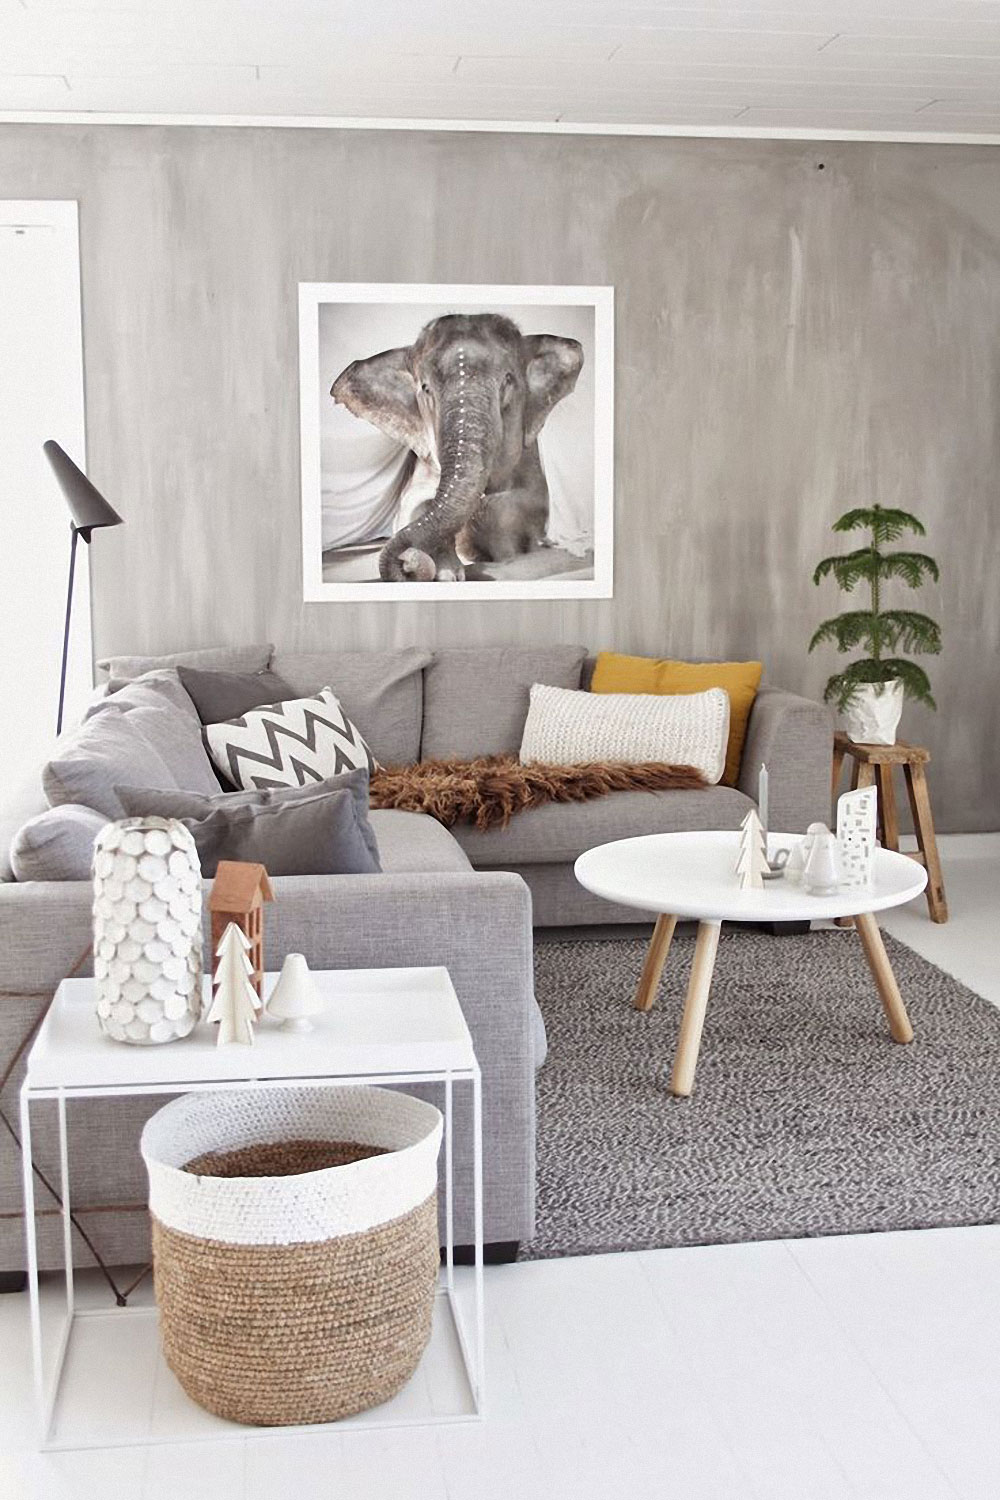 jestcafe.com--grey-rooms-4